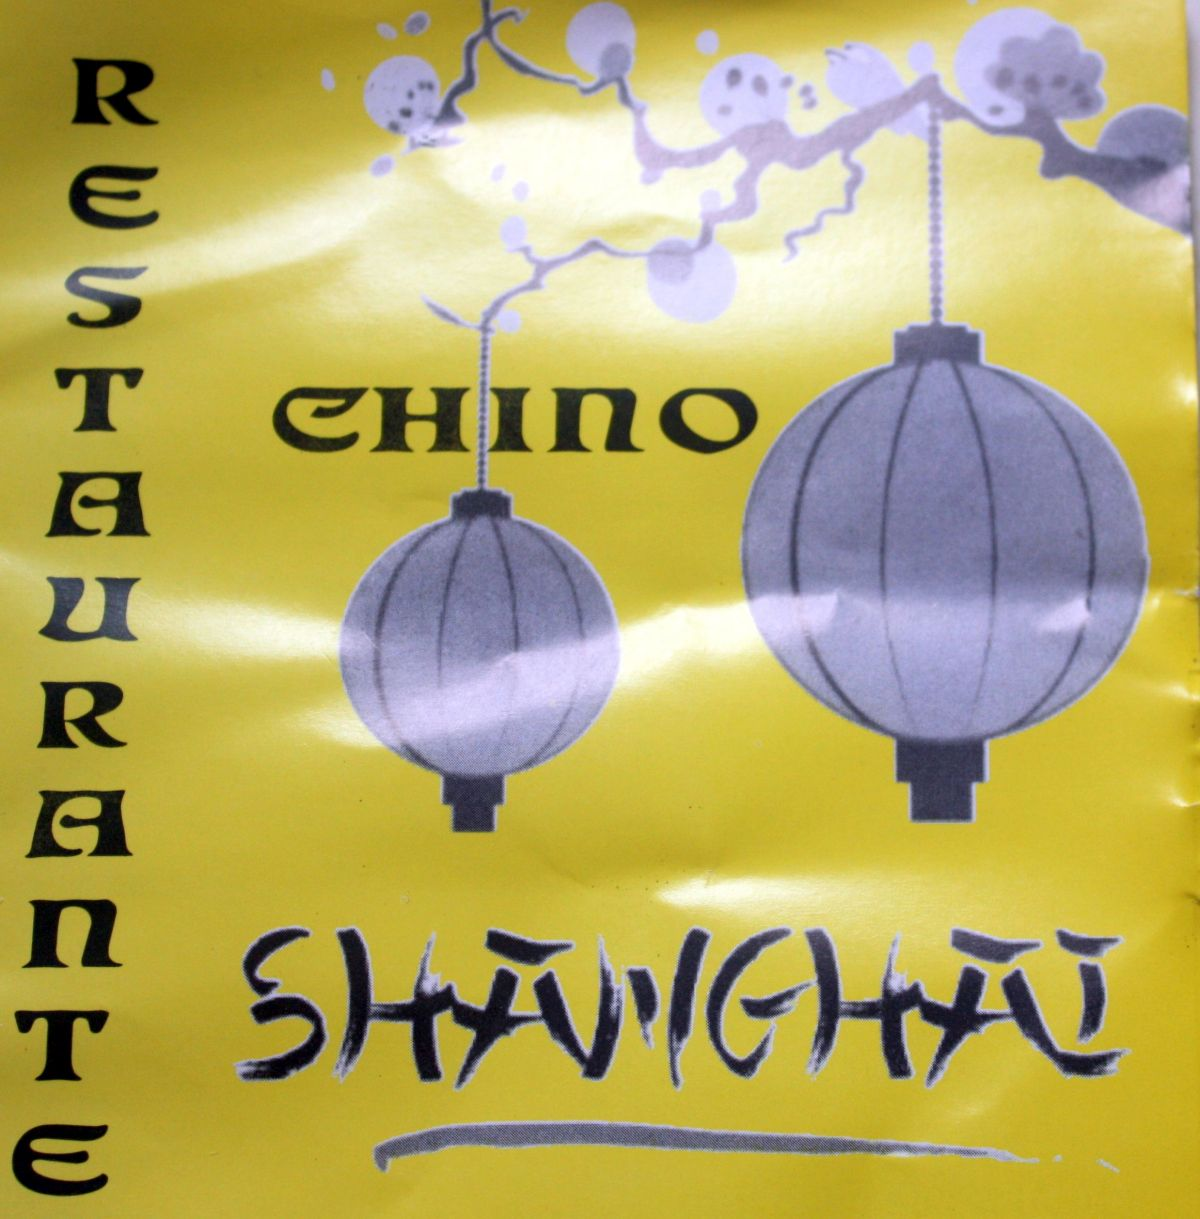 Restaurante Chino Shanghai of Realejos.